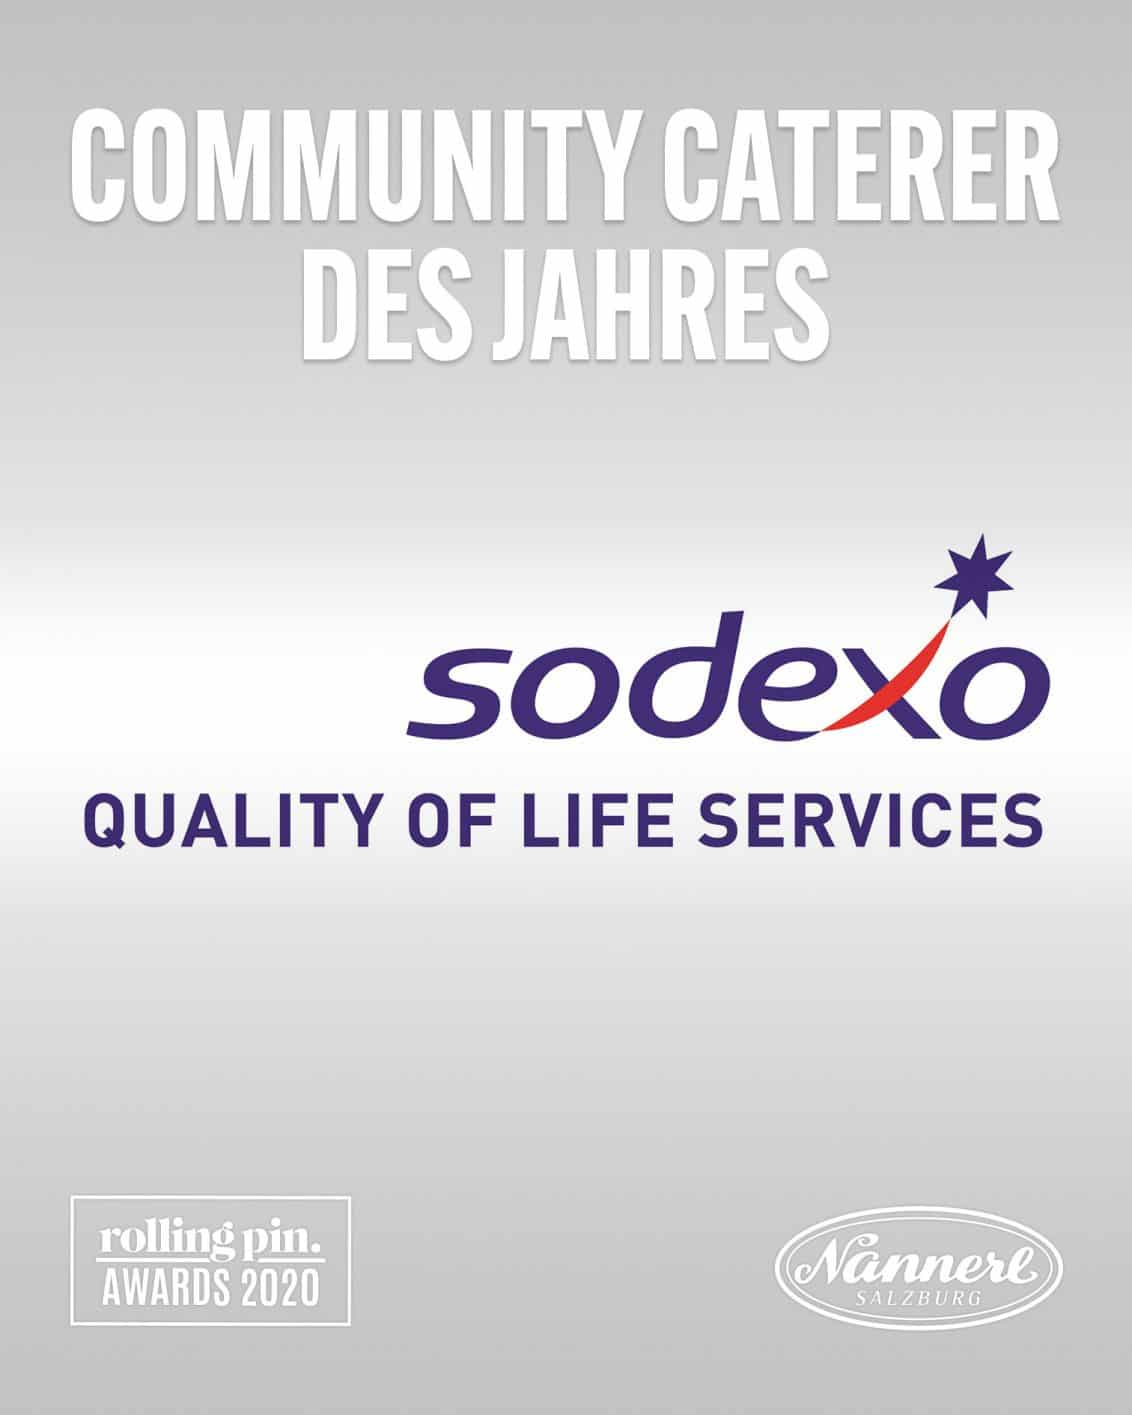 RPA_Community-Caterer_variante-3-1132x1415